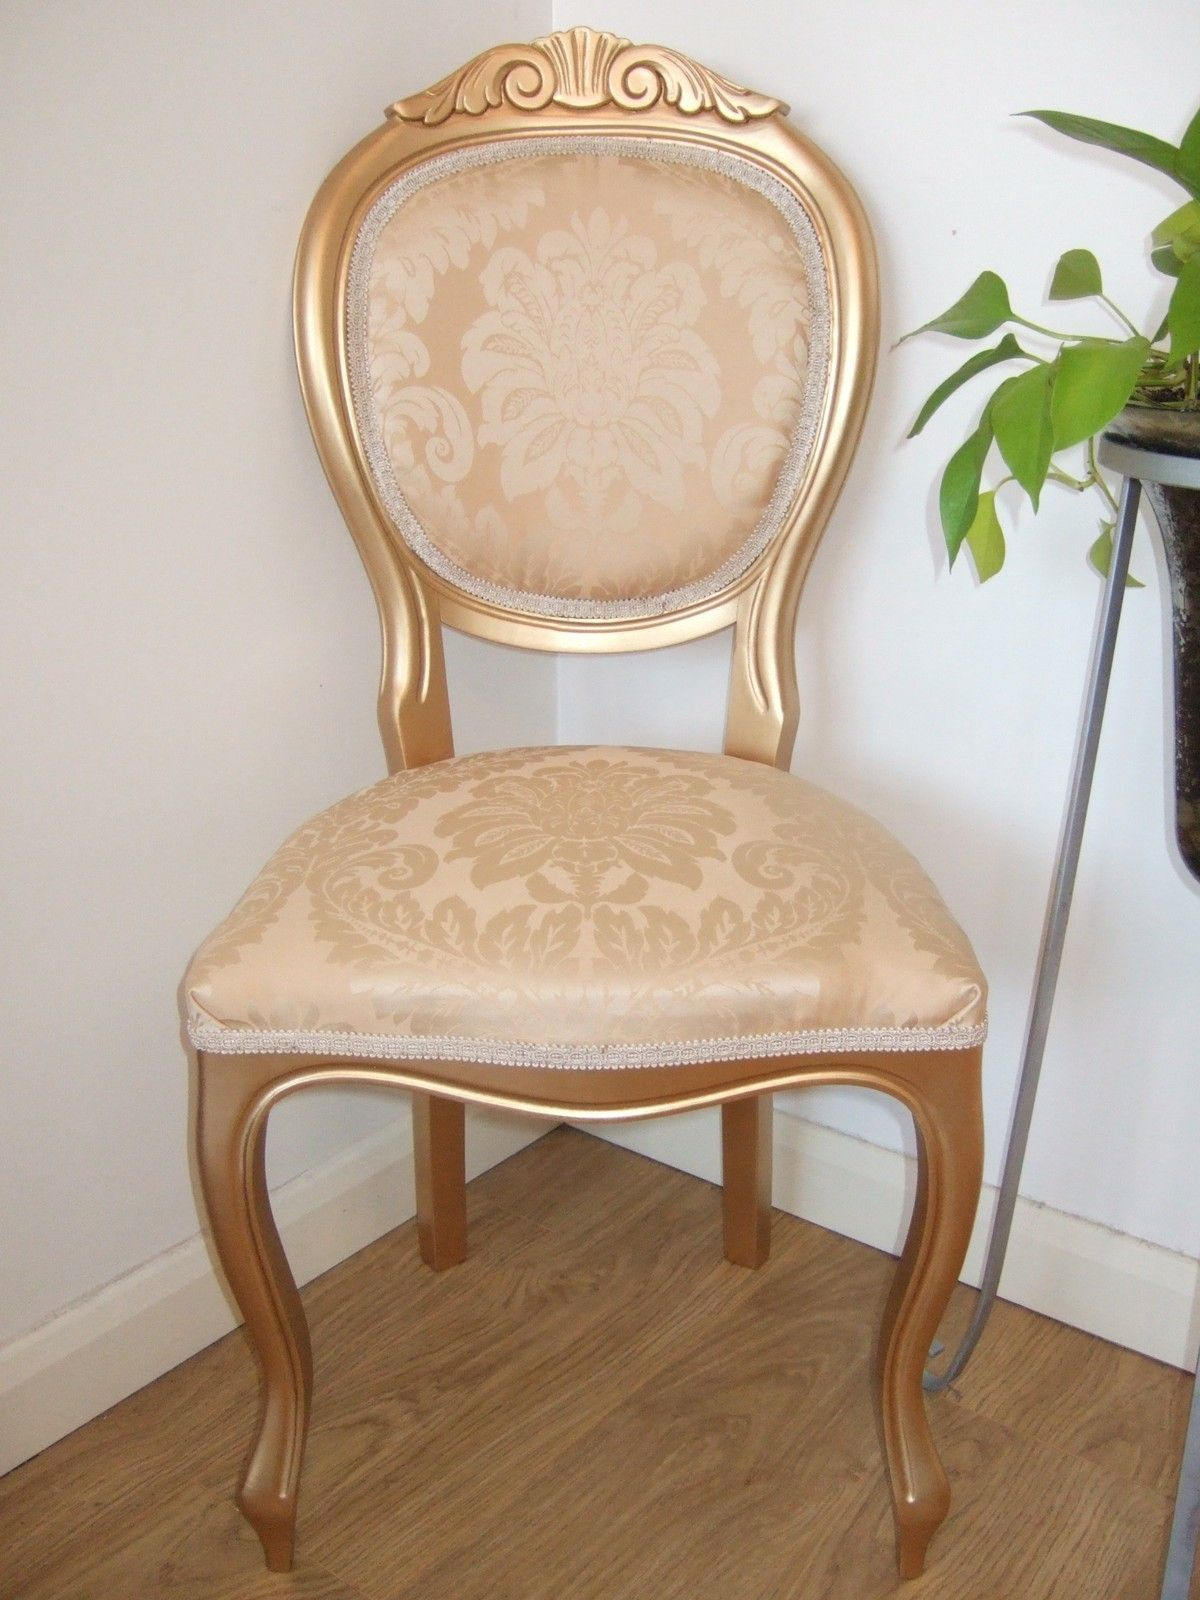 round back dining chair. Shimmery Gold French/Italian Round Back Dining Chair With Golden Damask Fabric Added A